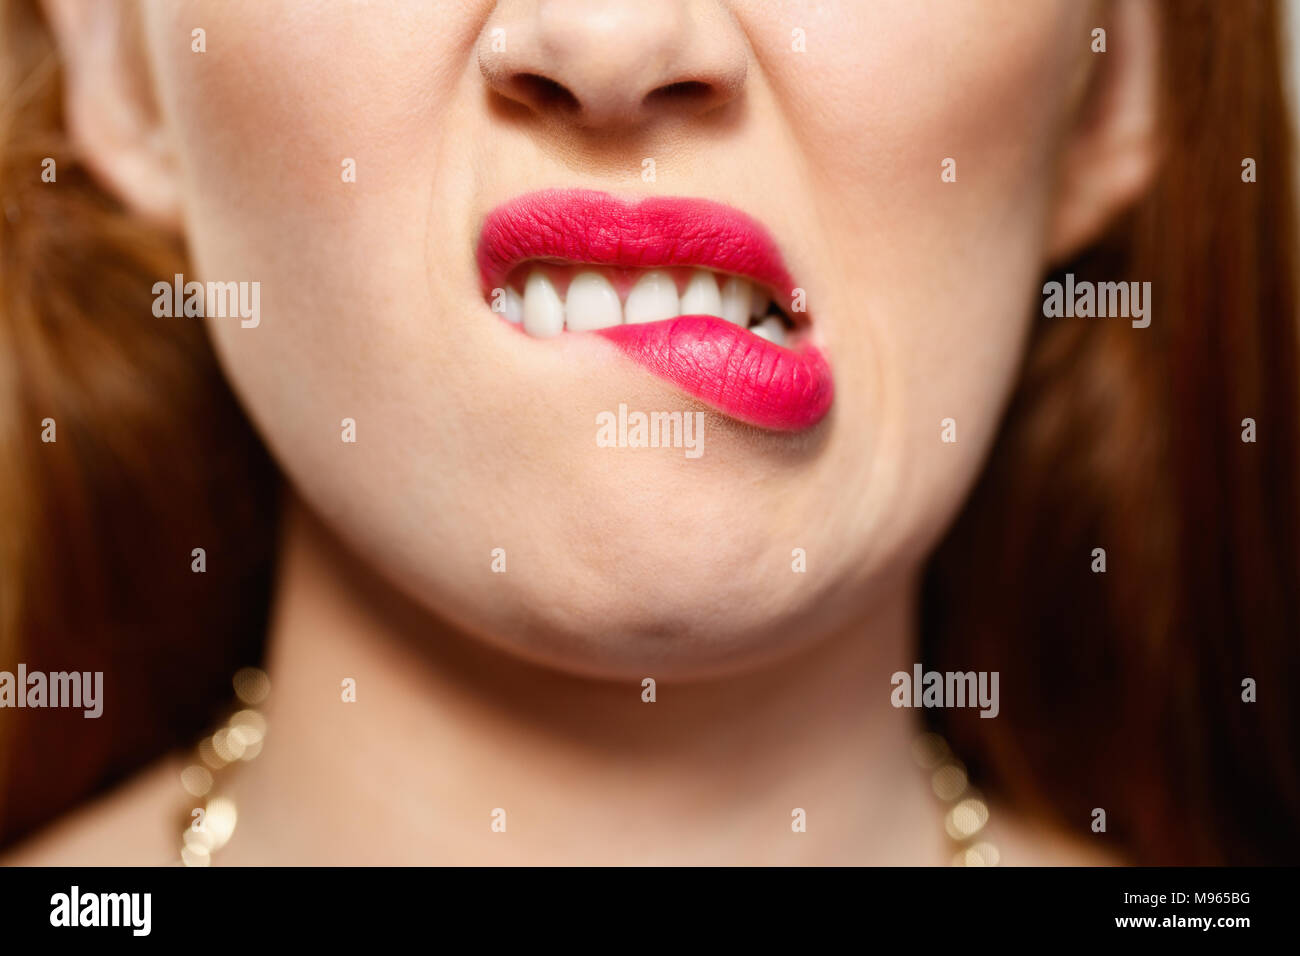 Portrait of insecure woman having doubts. Dubious redhead girl thinking, biting lips. Close up of mouth - Stock Image